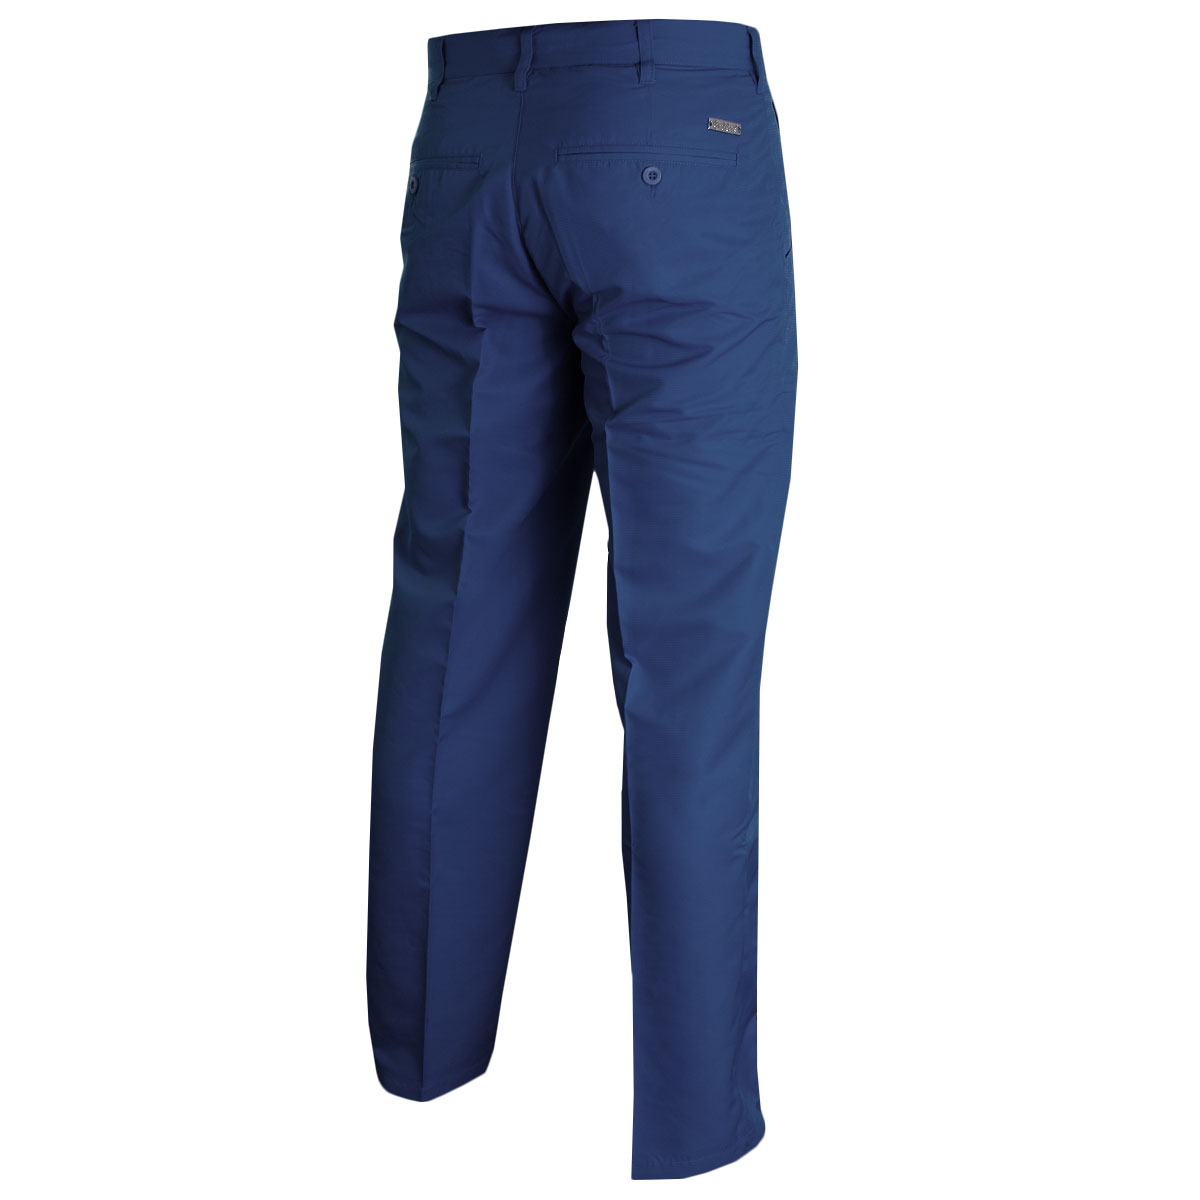 Island-Green-Mens-Tour-Golf-Trousers-Performance-Pant-57-OFF-RRP thumbnail 6